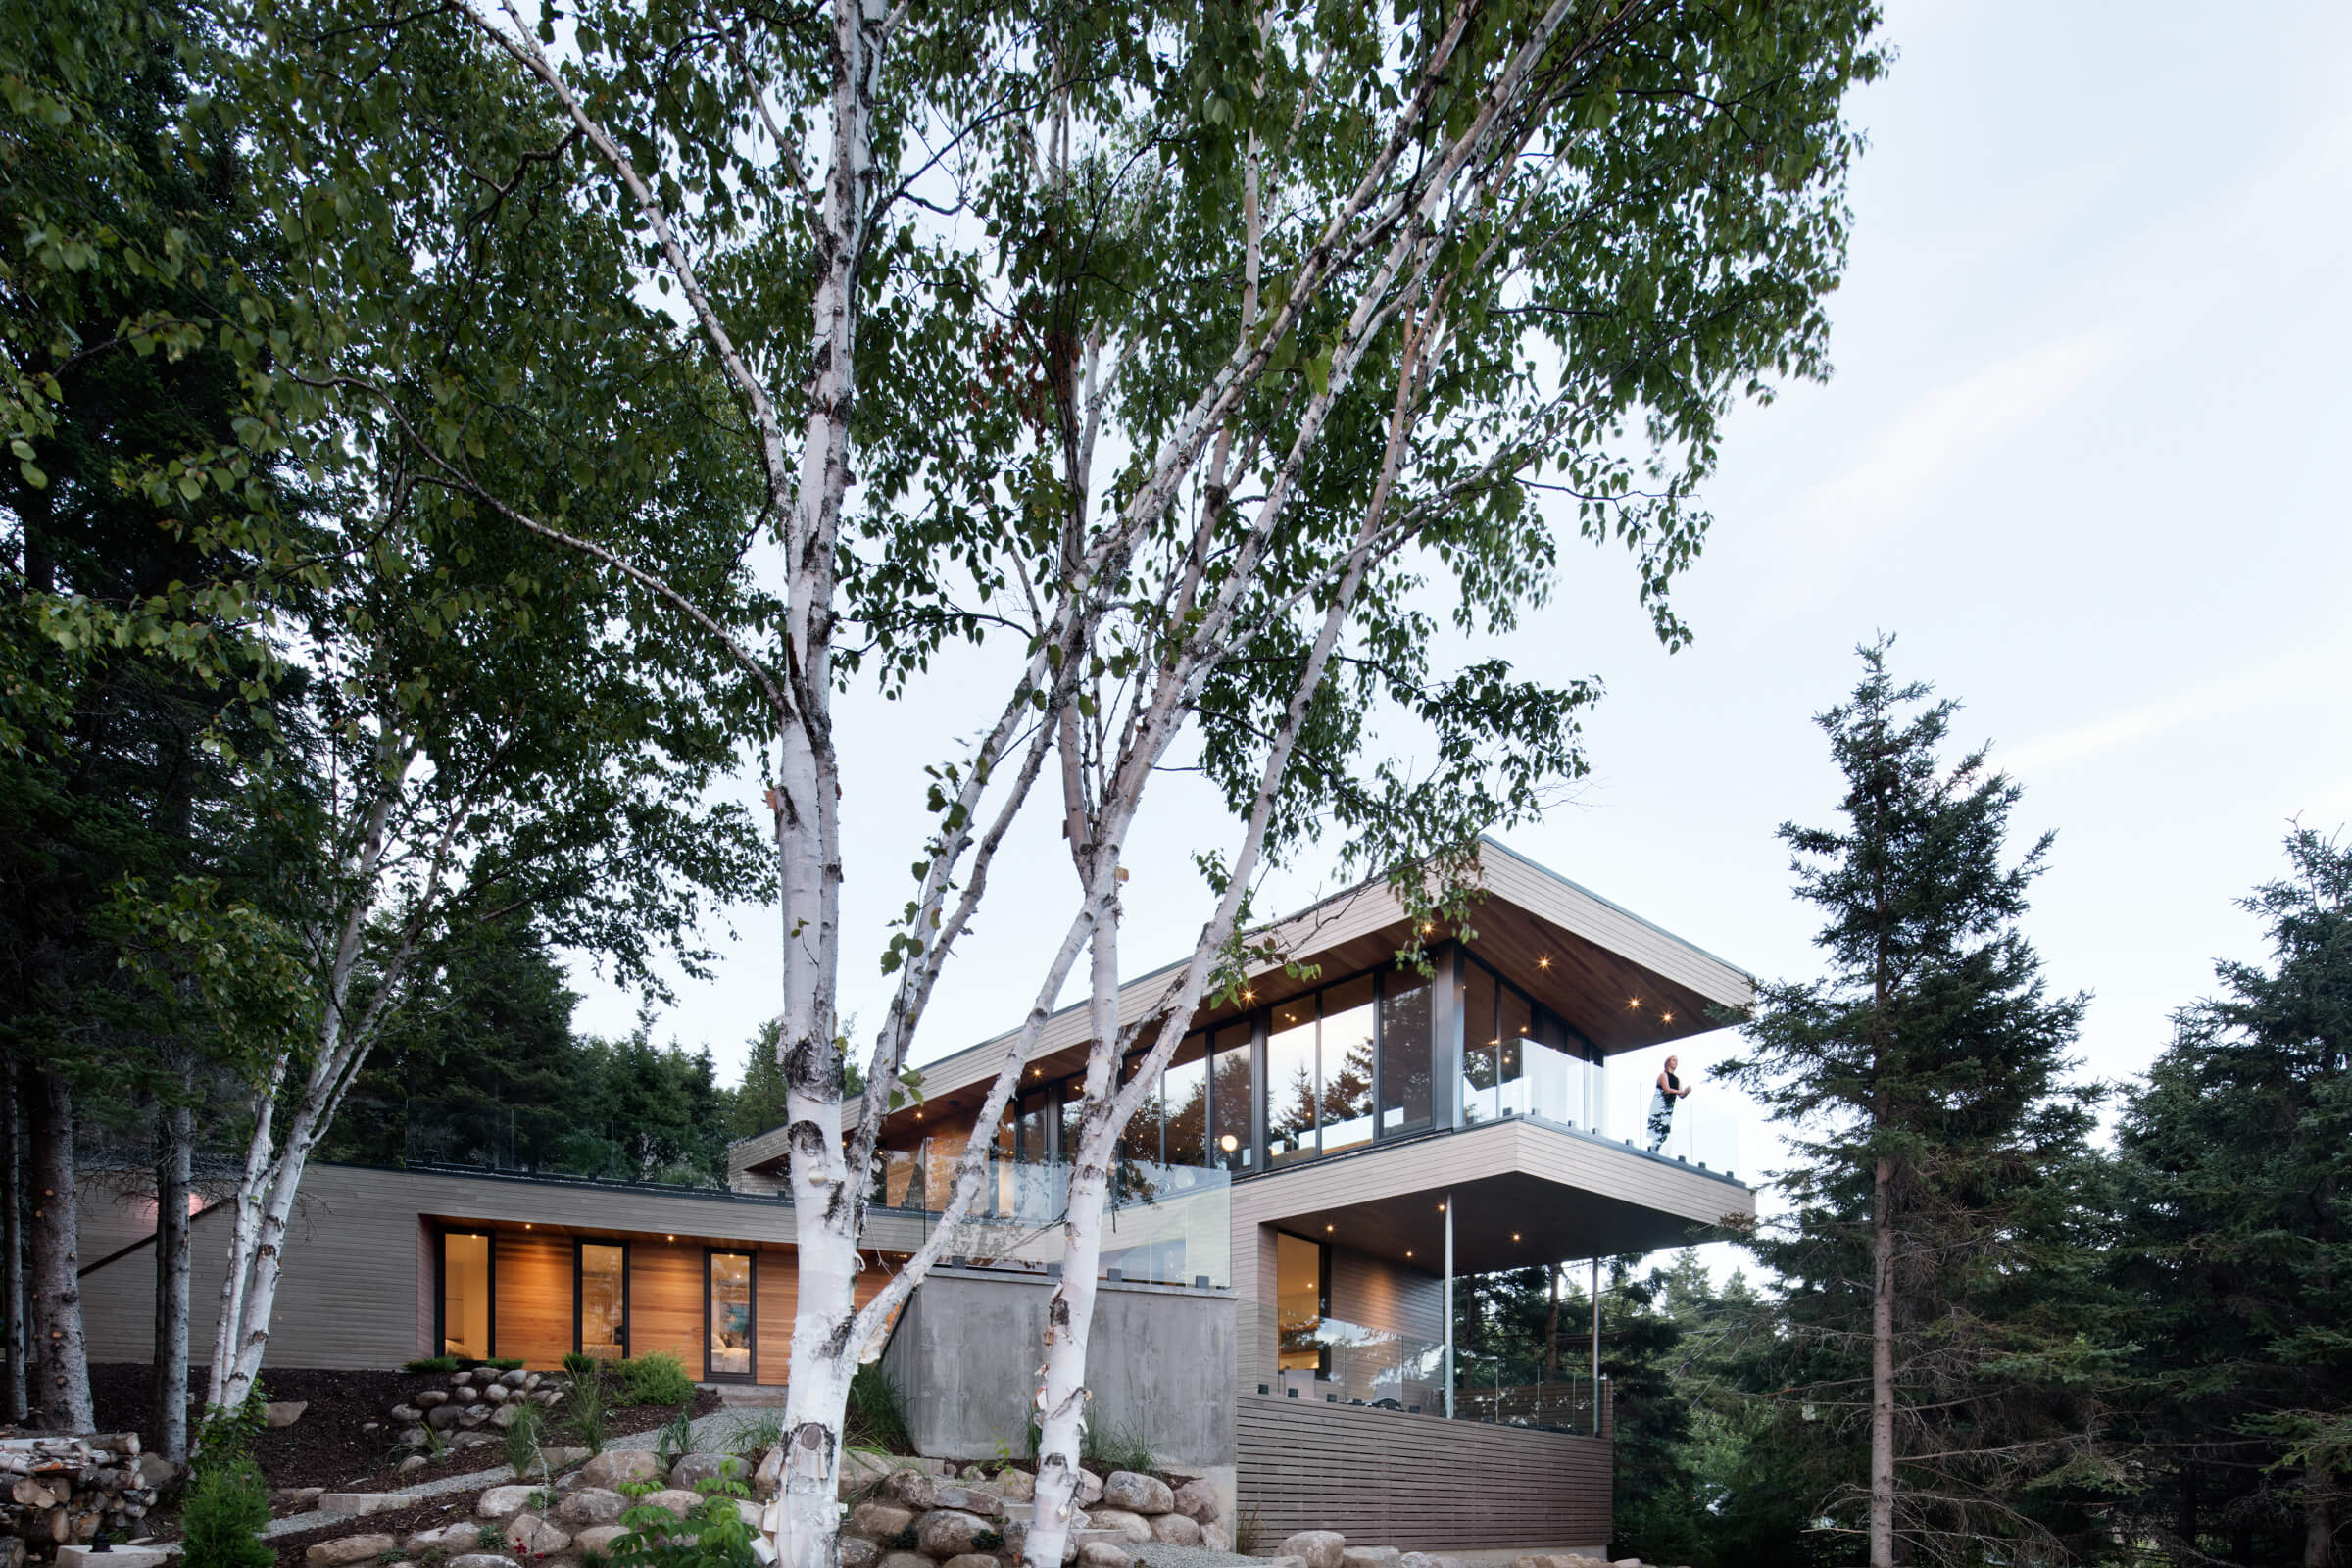 370_BOURGEOIS-LECHASSEUR-ARCHITECTES_RESIDENCE-ALTAIR_15